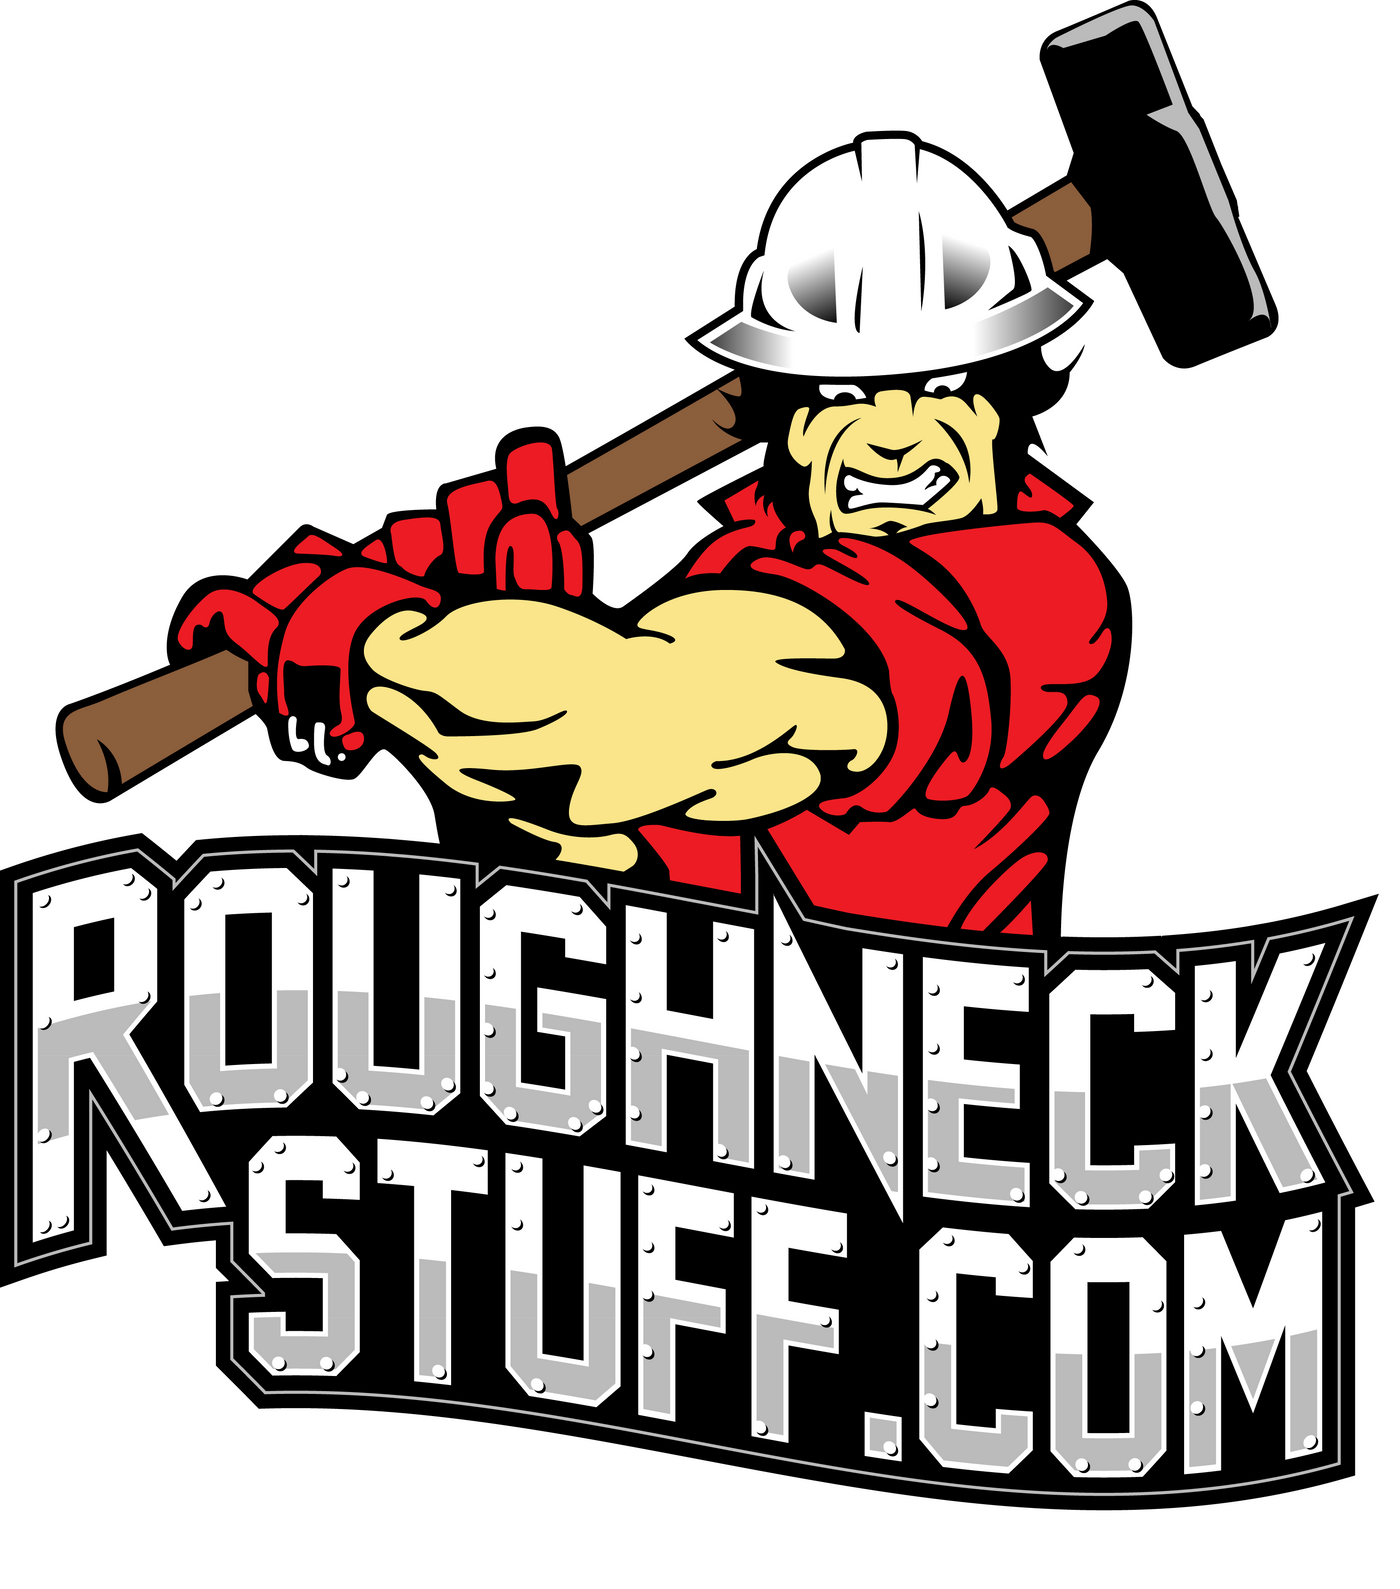 ... Oilfield-Roughneck-Total-Nipple-Up-Hard-Hat-Sticker